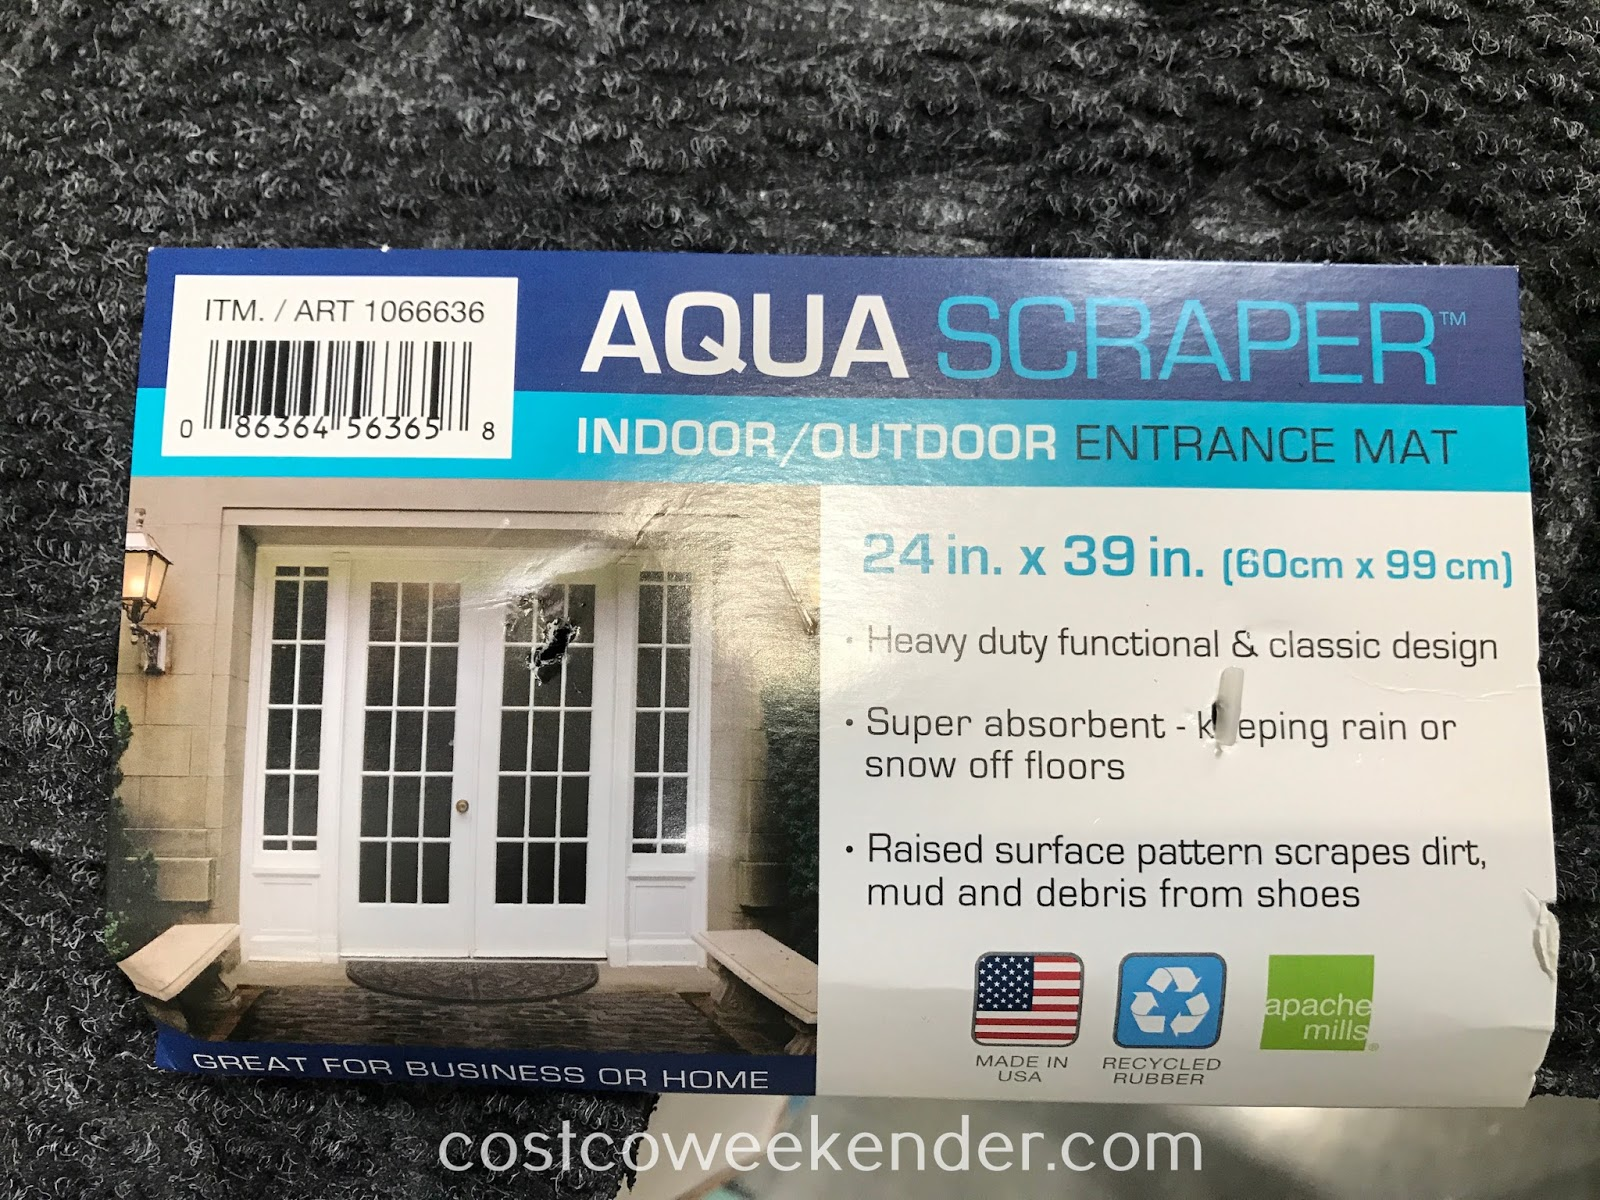 Costco 1066636 - Apache Mills Aqua Scraper Half Round Indoor/Outdoor Entrance Mat: buy one for each doorway into your home